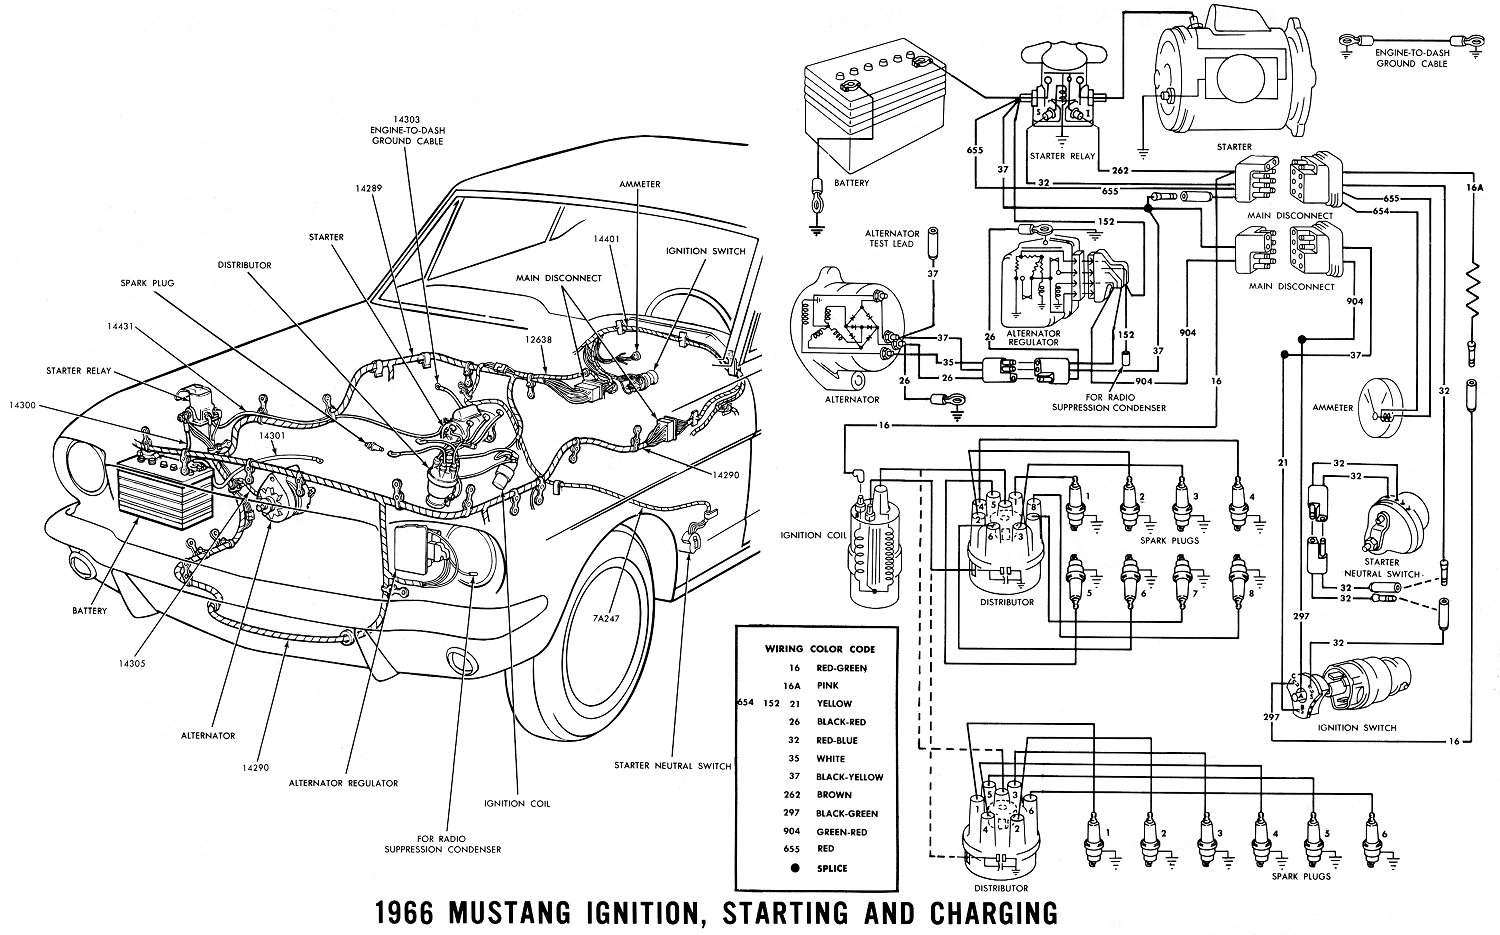 66ignit 1966 mustang wiring diagrams average joe restoration 1968 mustang ignition wiring diagram at bakdesigns.co